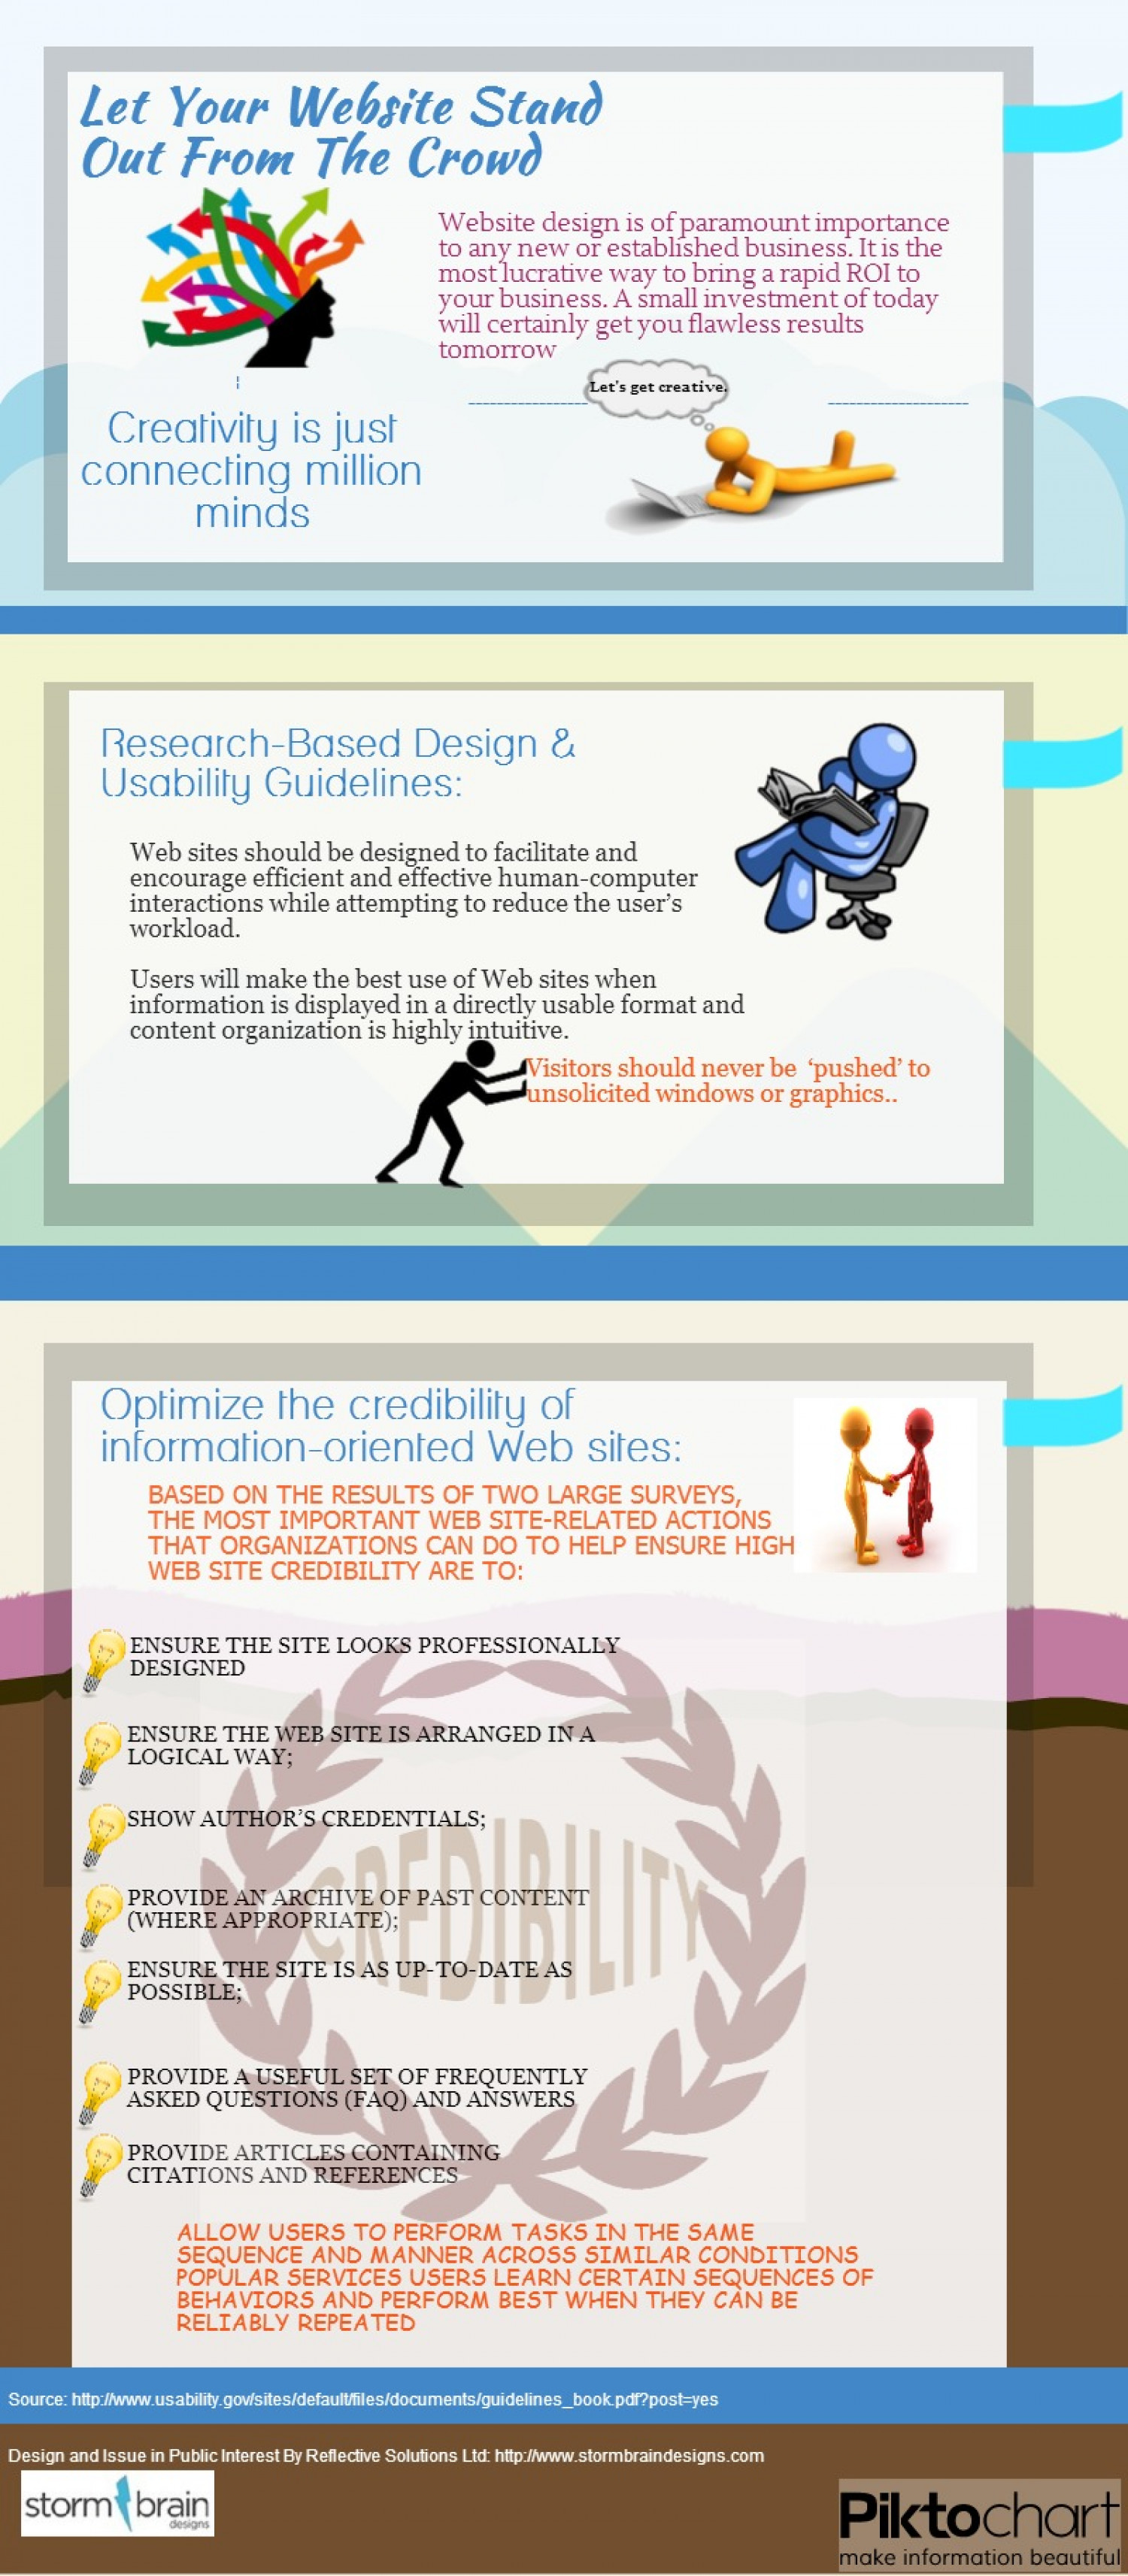 Let Your Website Stand Out From The Crowd Infographic